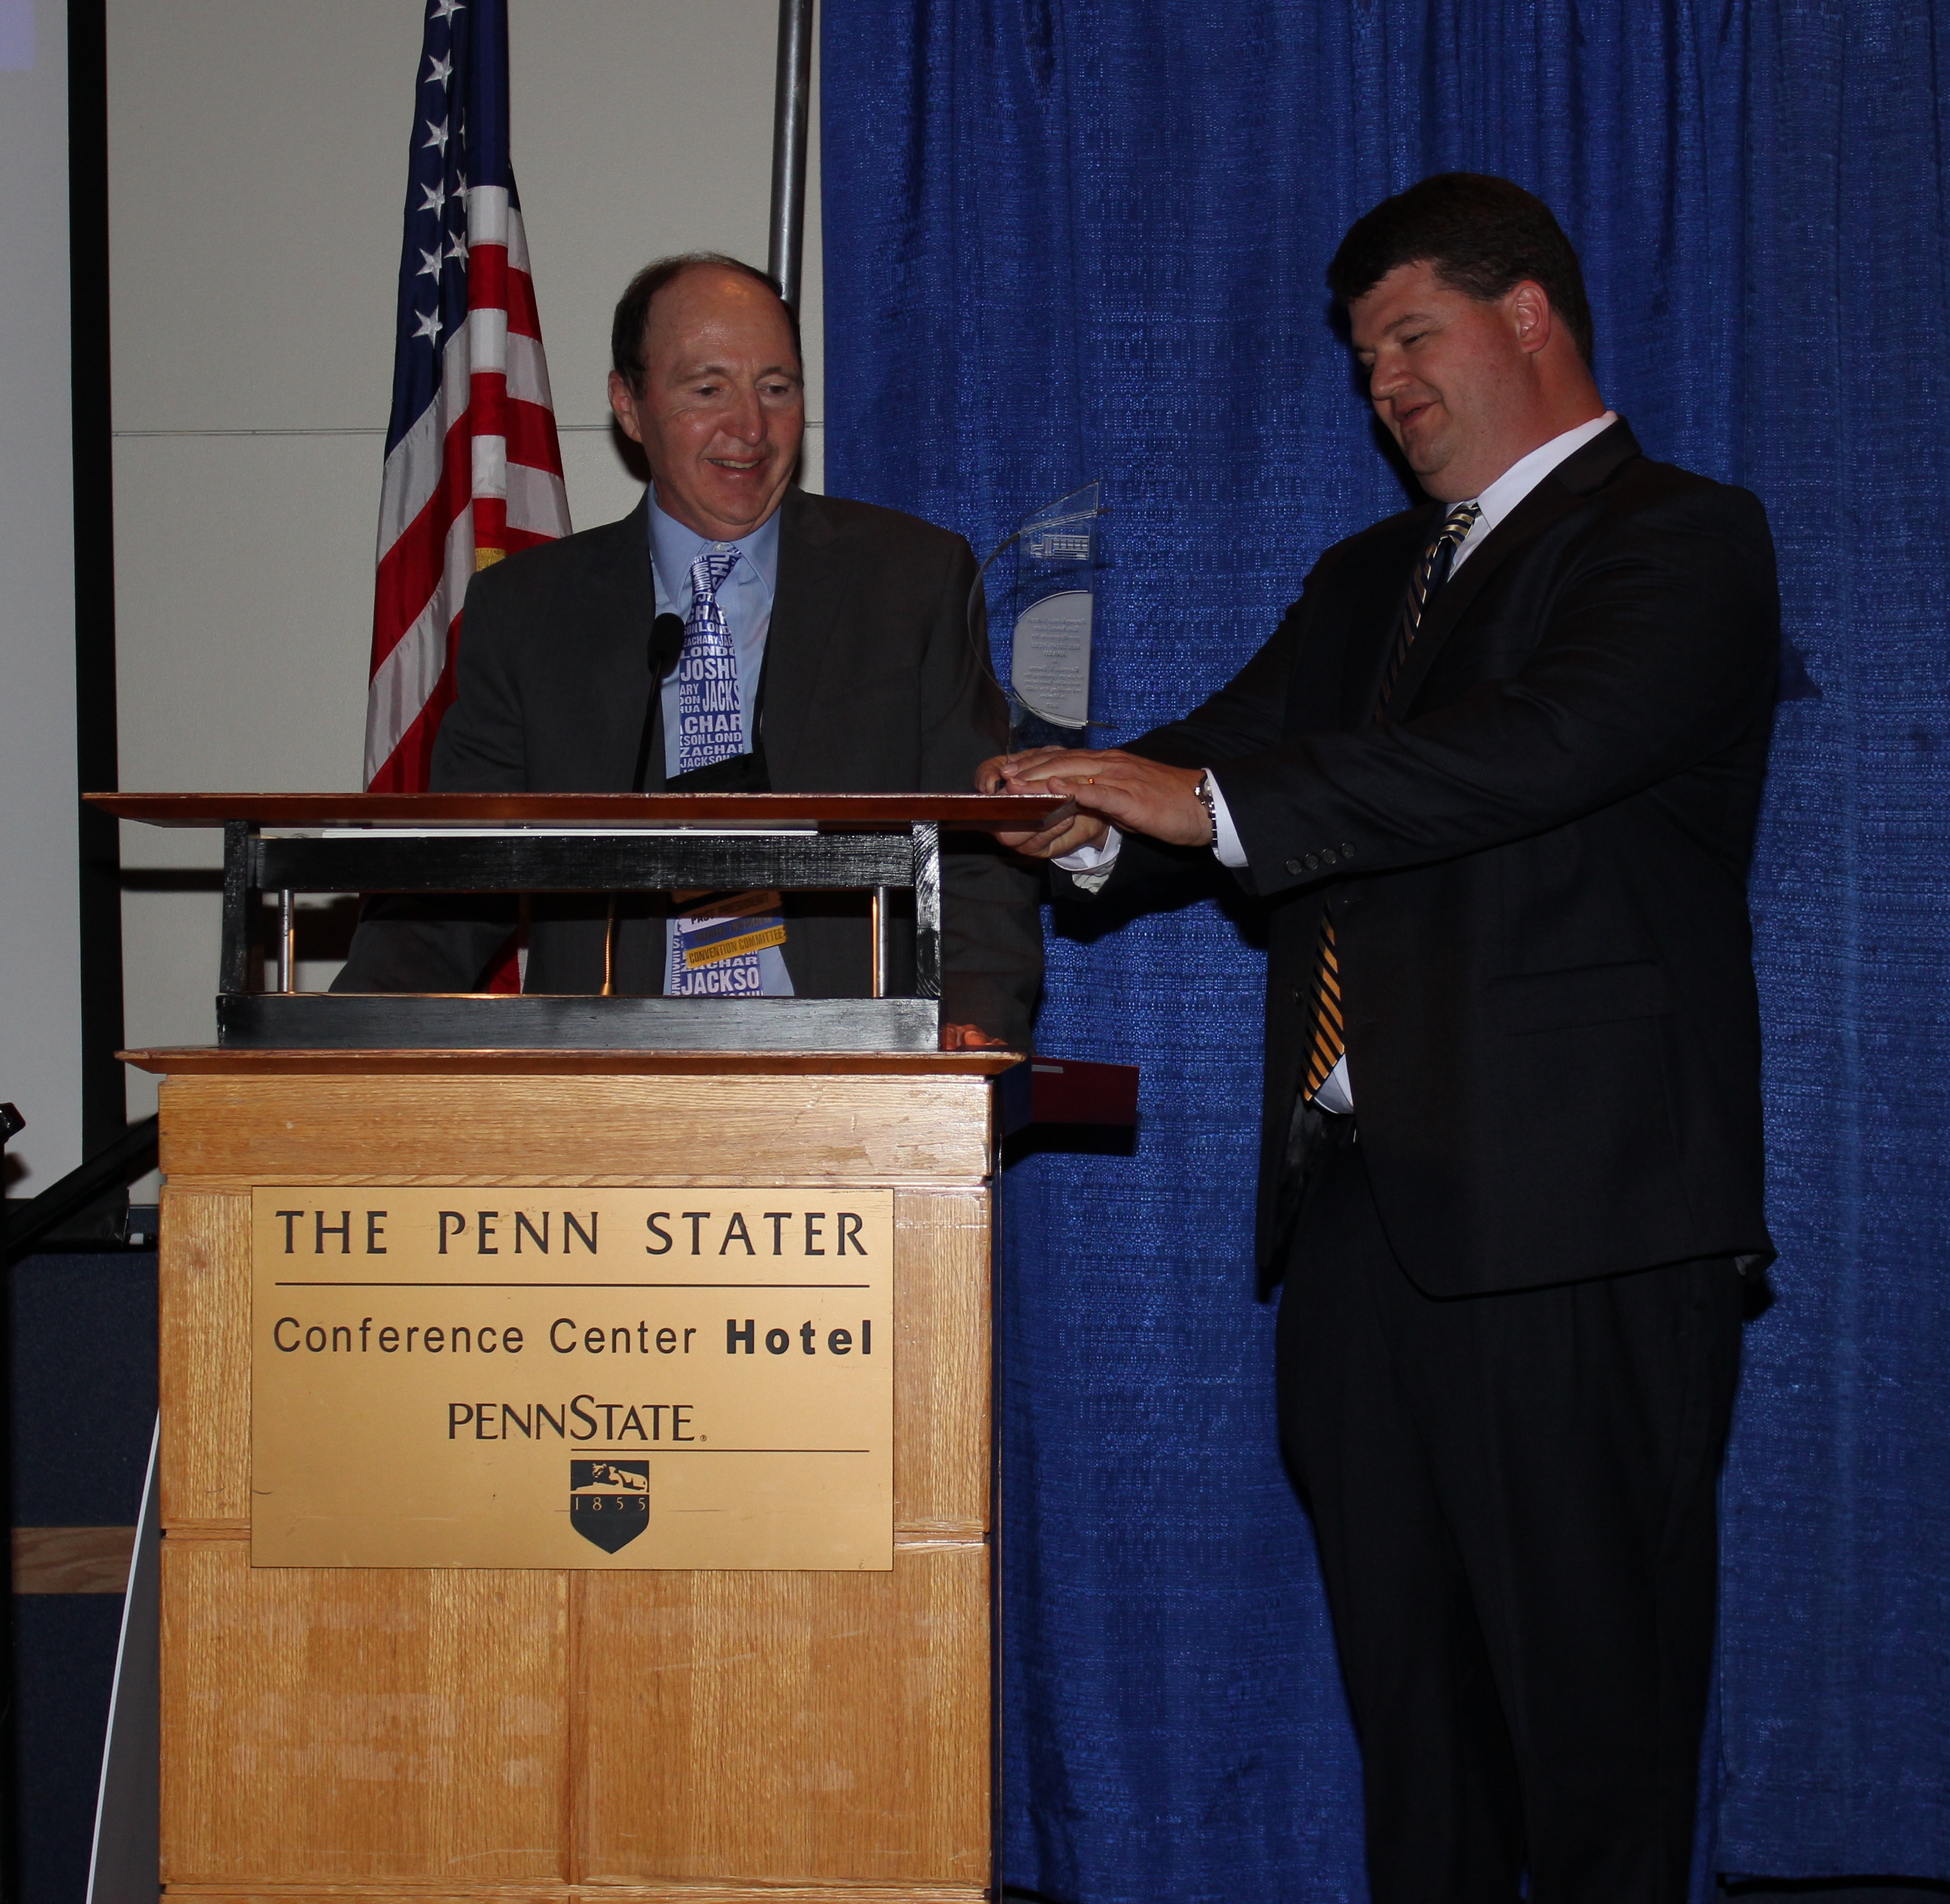 RANDY SMITH RECEIVES PSBA BUS STOPS HERE AWARD